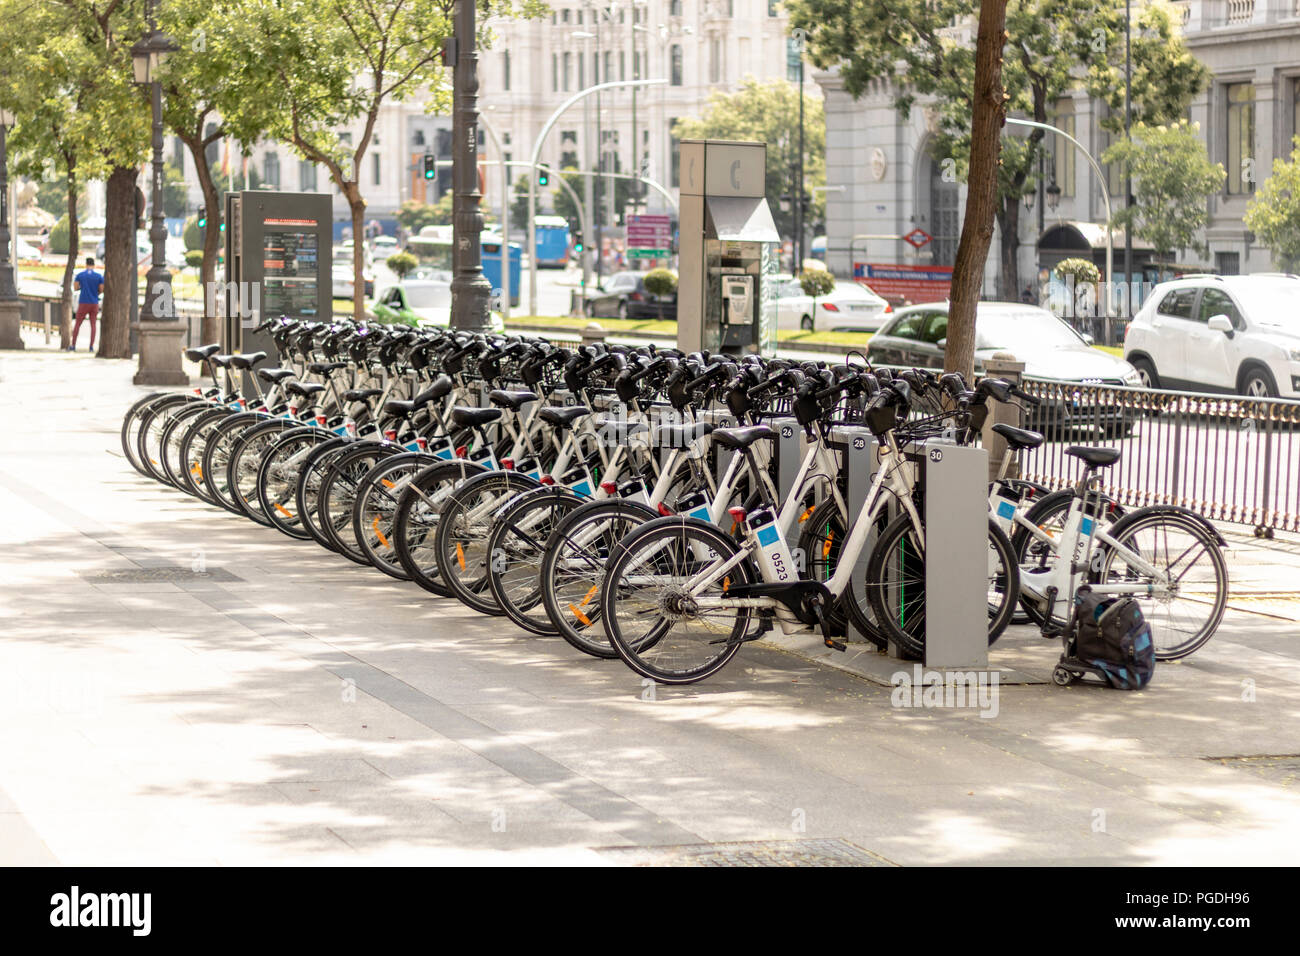 Station of bikesharing system in Madrid. - Stock Image